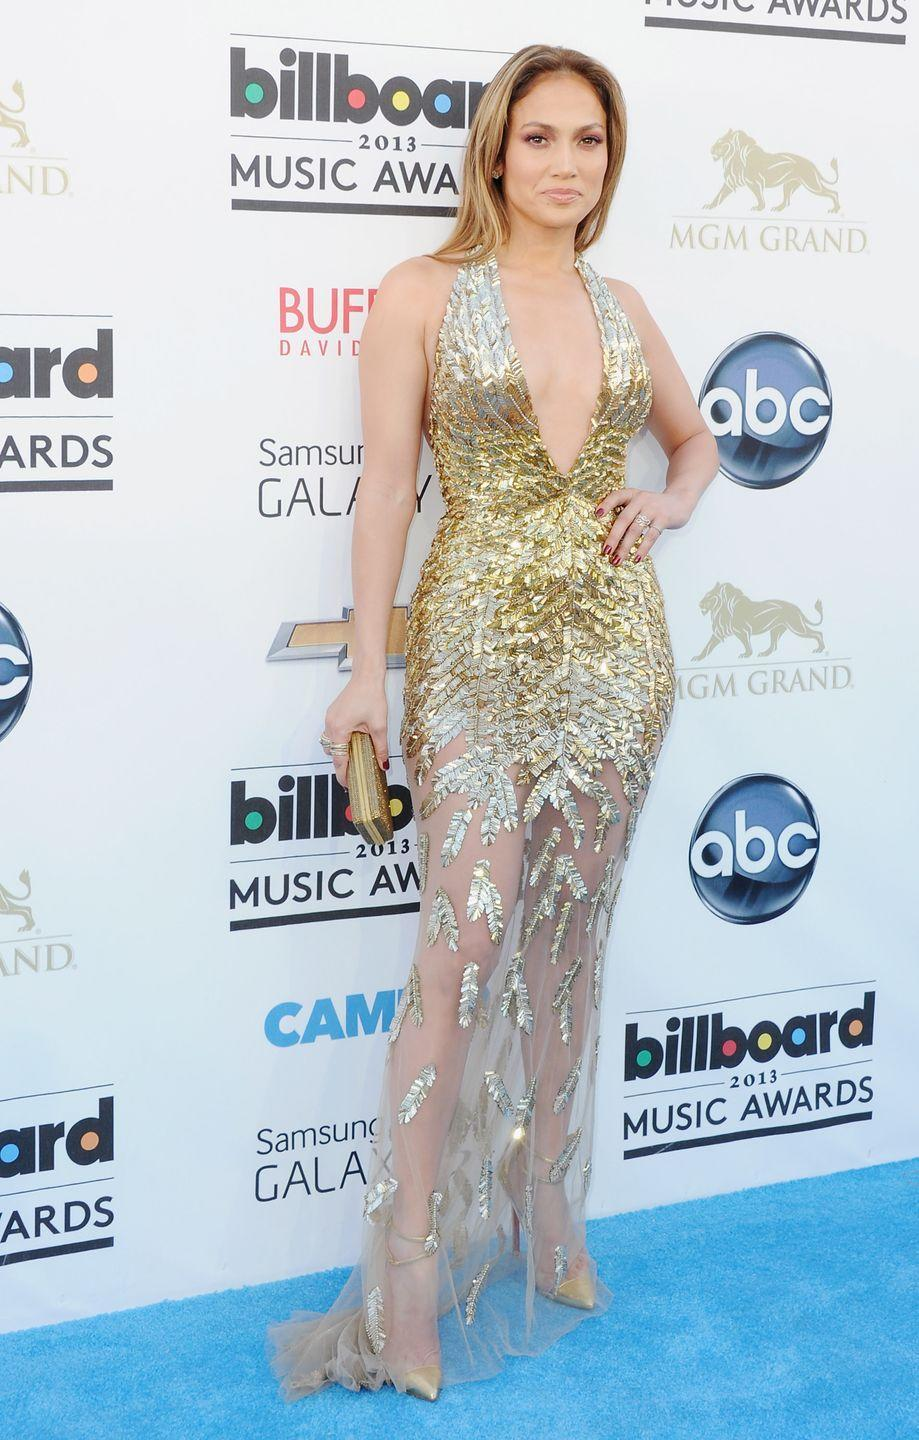 <p>The pop star shines in a plunging gold embellished dress with matching strappy heels and clutch at the Billboard Music Awards.</p>